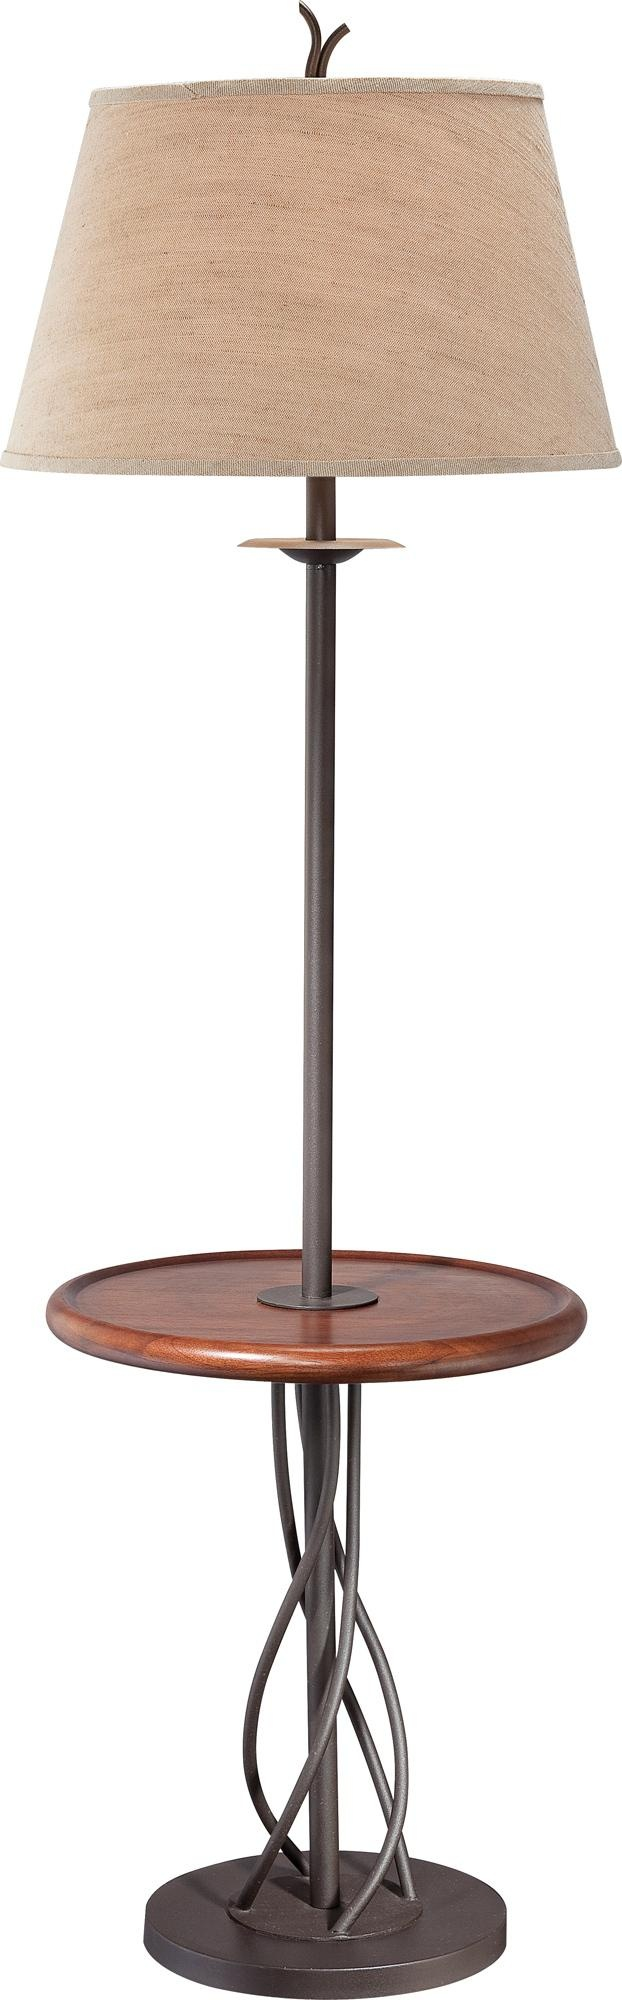 19 best tables images on pinterest floor lamps tray tables and iron twist base wood tray table floor lamp geotapseo Gallery